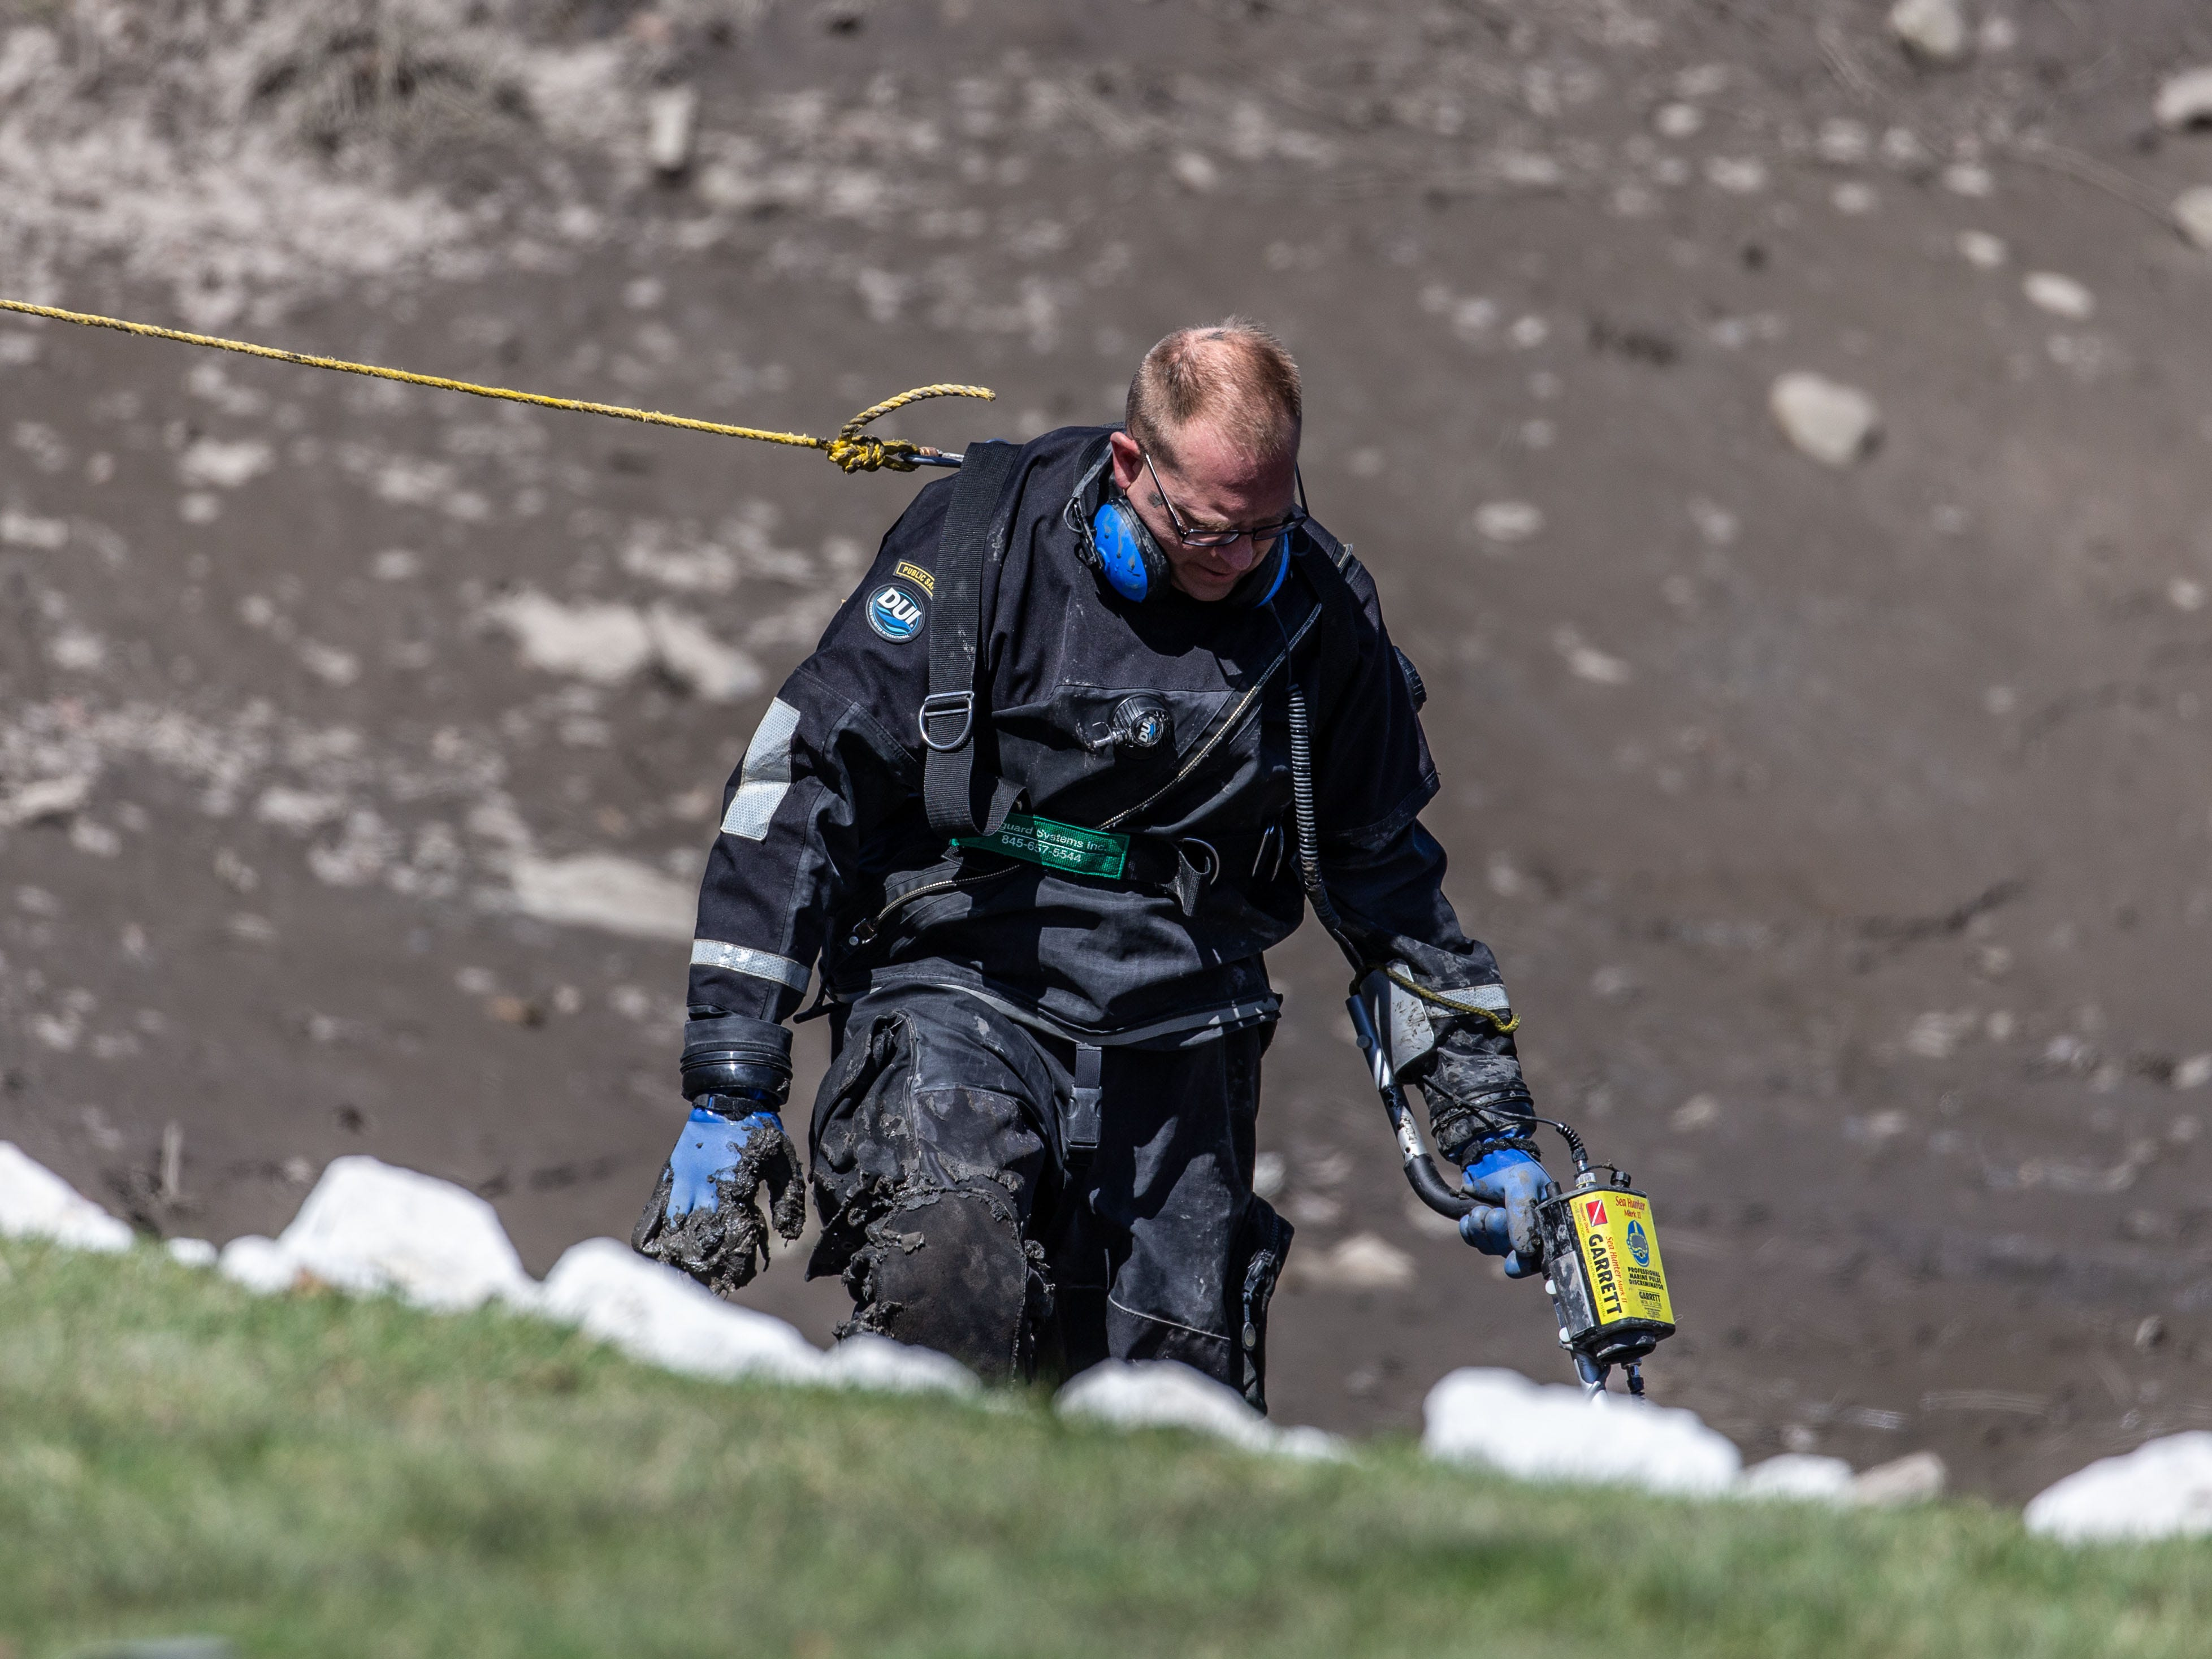 A member of the Waukesha County Sheriff's Dive Team assists the Town of Brookfield Police as they search for evidence in a drained pond at the Brookfield Lake Condominiums on Monday, April 15, 2019. The search is related to a November homicide.